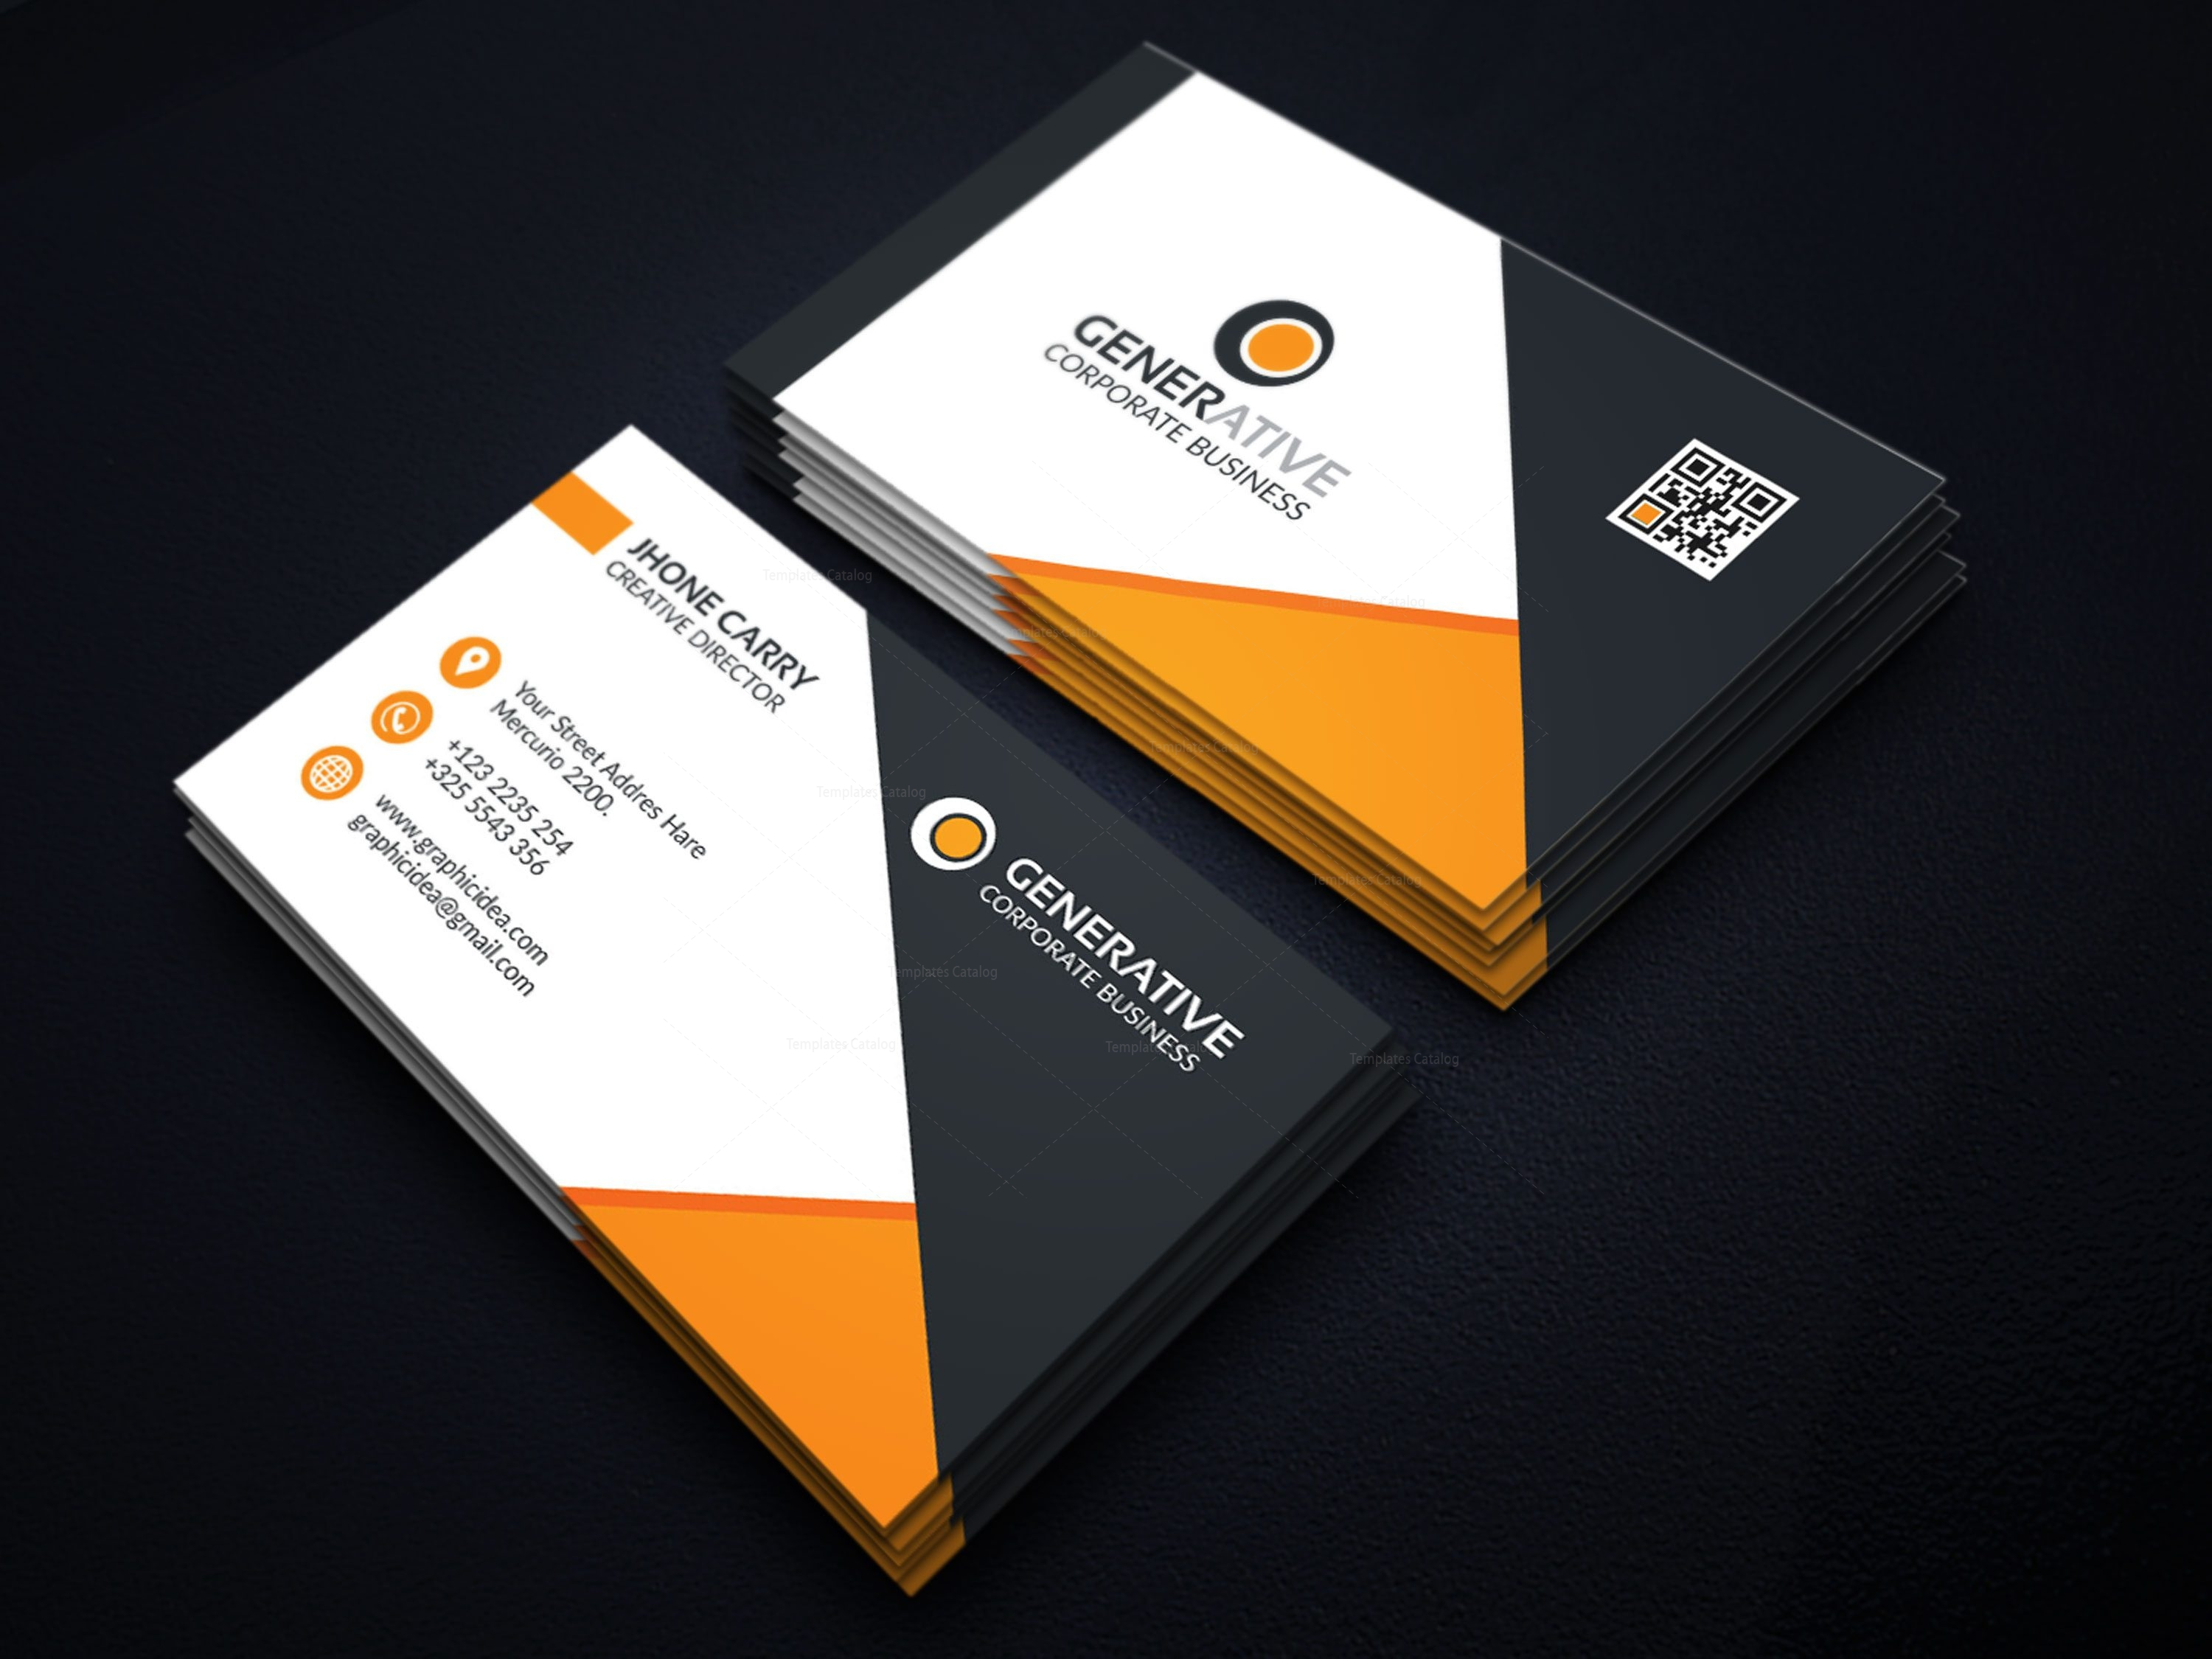 Eps creative business card design template 001596 template catalog eps creative business card design template 3 friedricerecipe Gallery